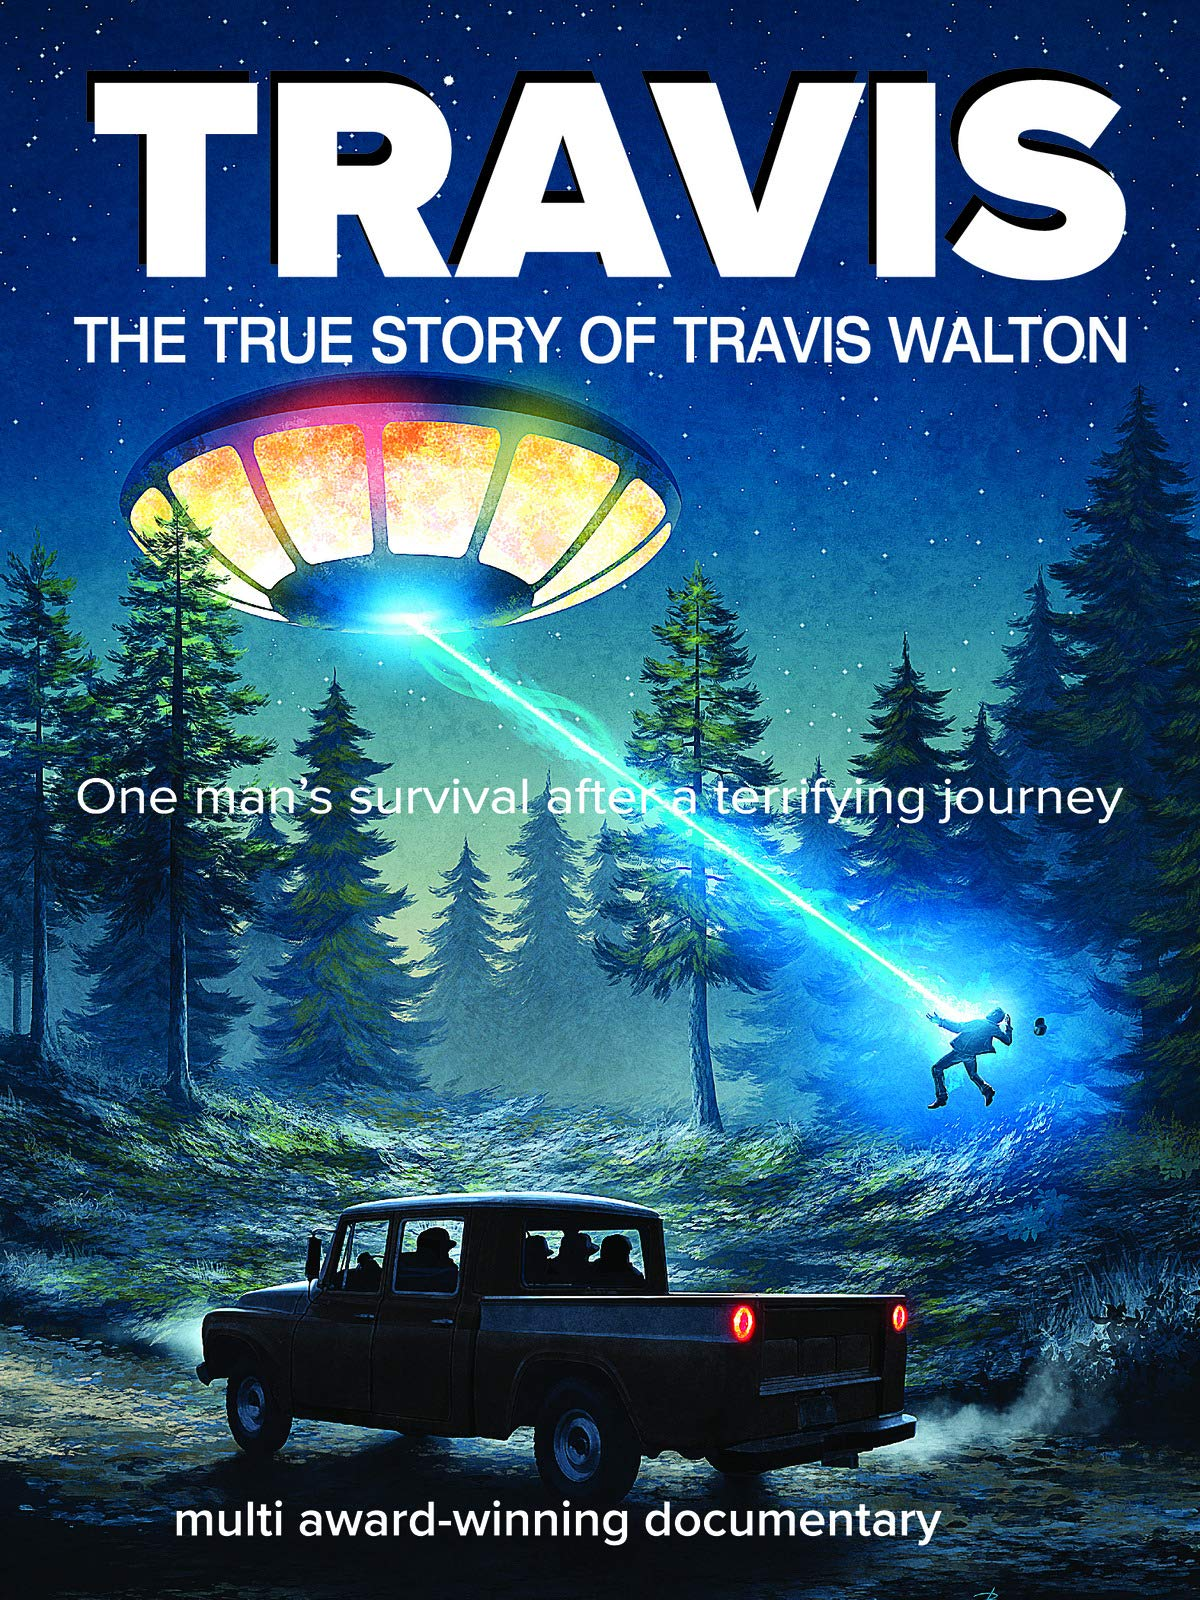 Travis - The True Story Of Travis Walton